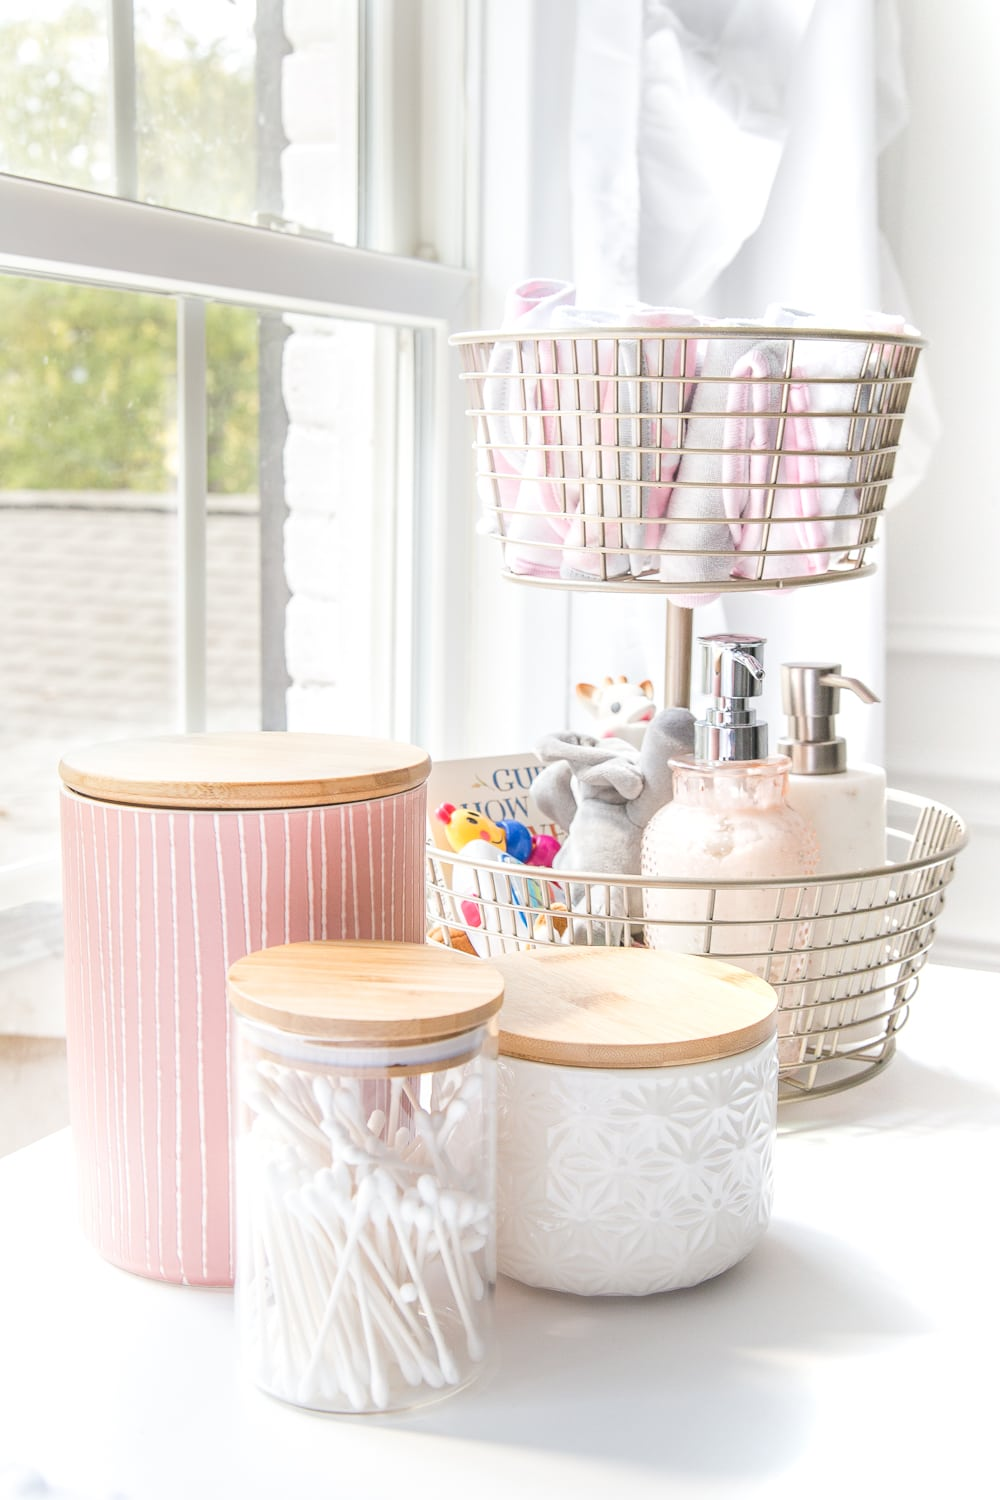 Nursery Organization | Use a tiered fruit basket from the kitchenware aisle to store baby washcloths, grabby toys, Wubbanubs, lotion, and hand sanitizer and lidded kitchen canisters to store Q-tips, pacifiers, and hair bows.